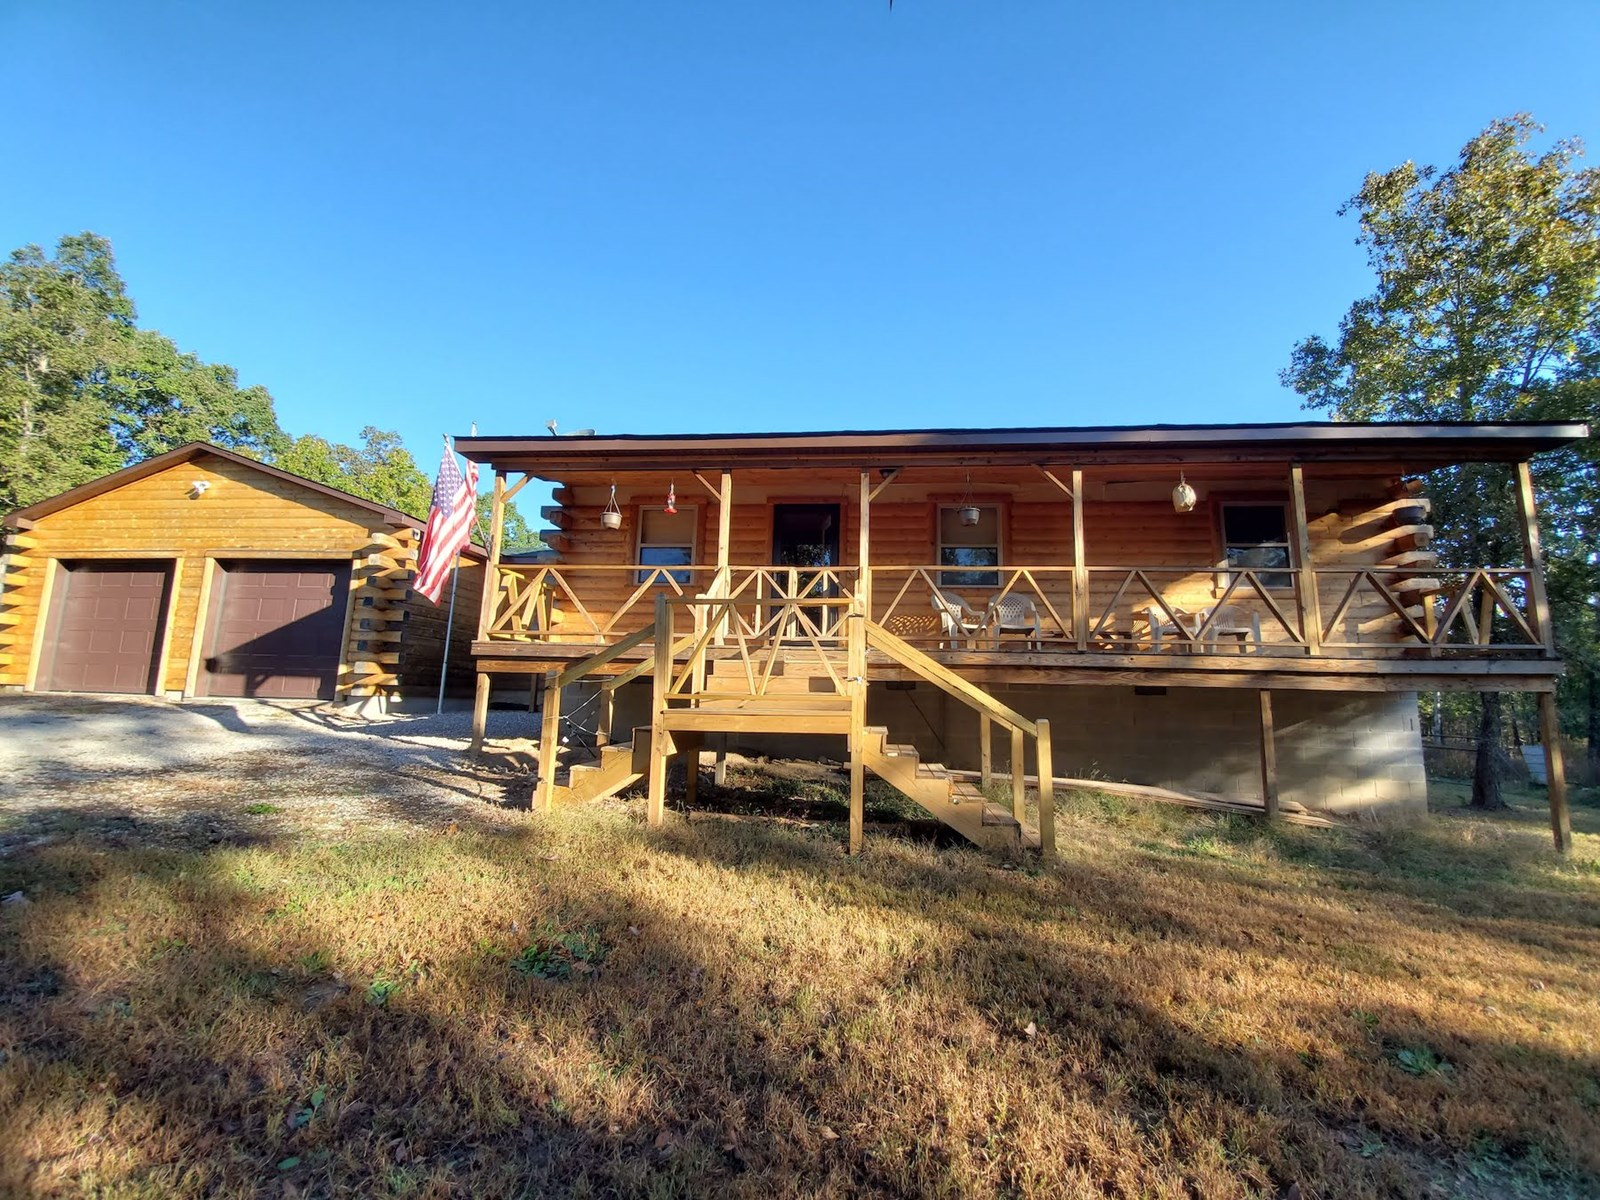 Country Log Home for Sale in South Central Missouri Ozarks